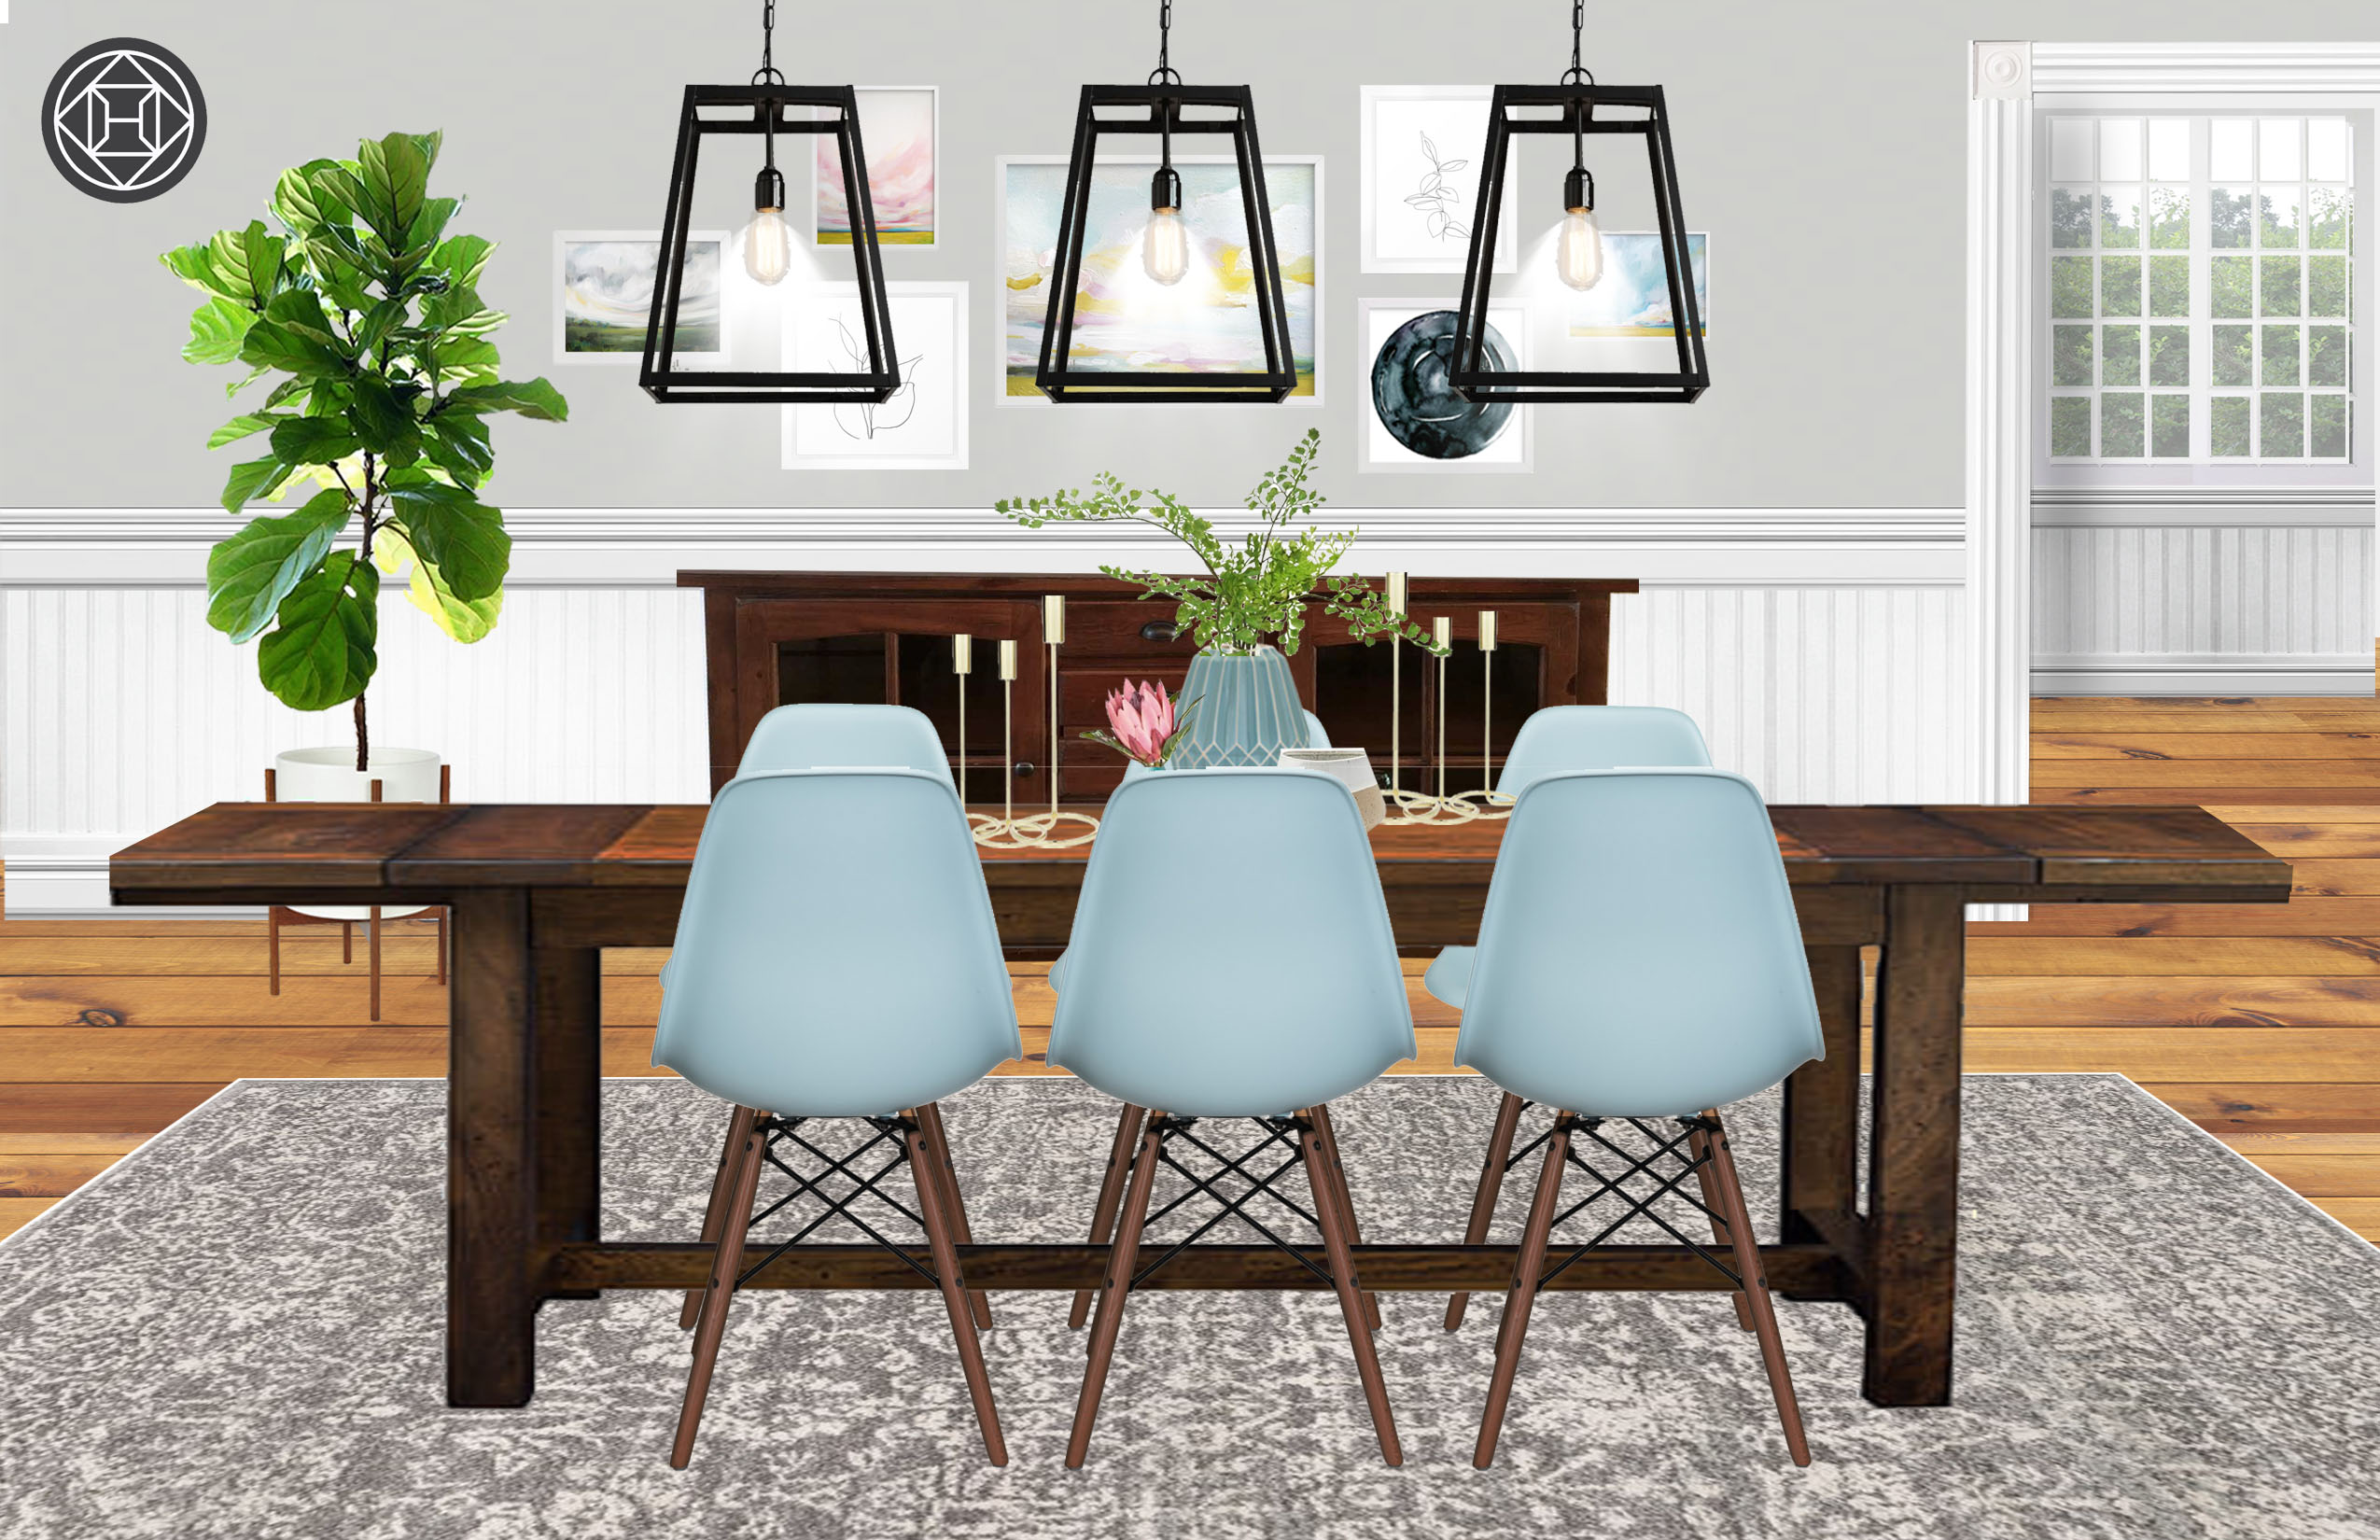 Marvelous Eclectic Bohemian Dining Room Design By Havenly Interior Cjindustries Chair Design For Home Cjindustriesco